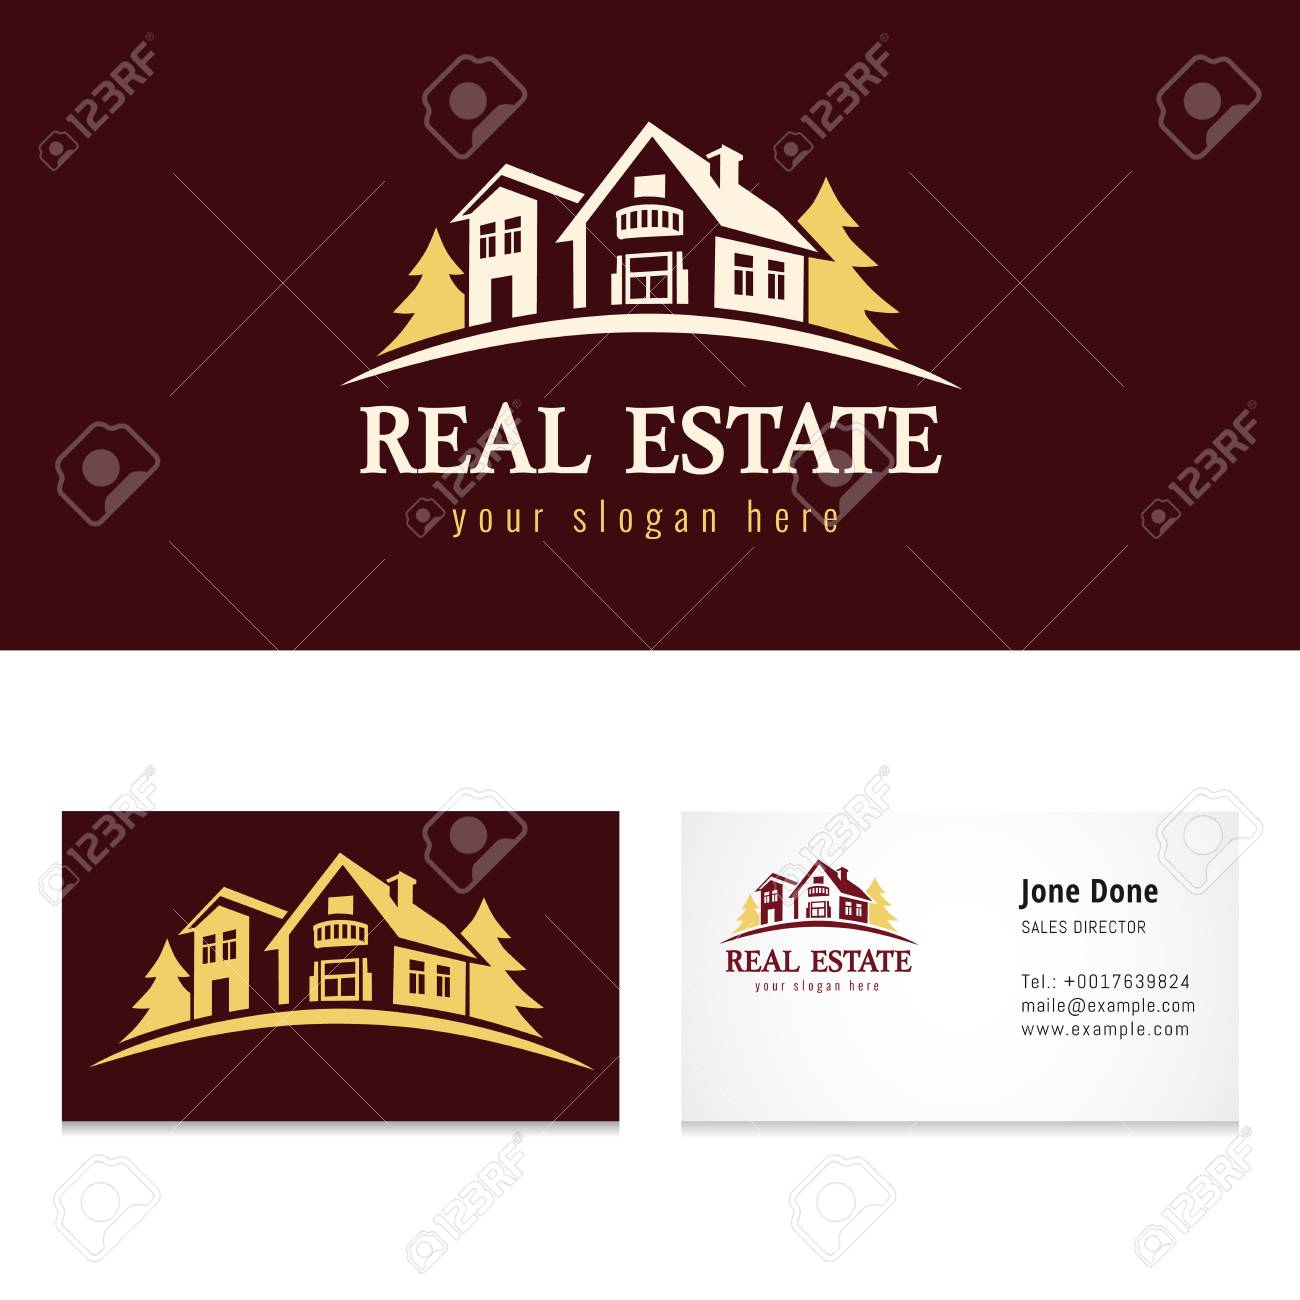 Real Estate Golden Forest Logo Template Creative Luxury Icon For Agency Building